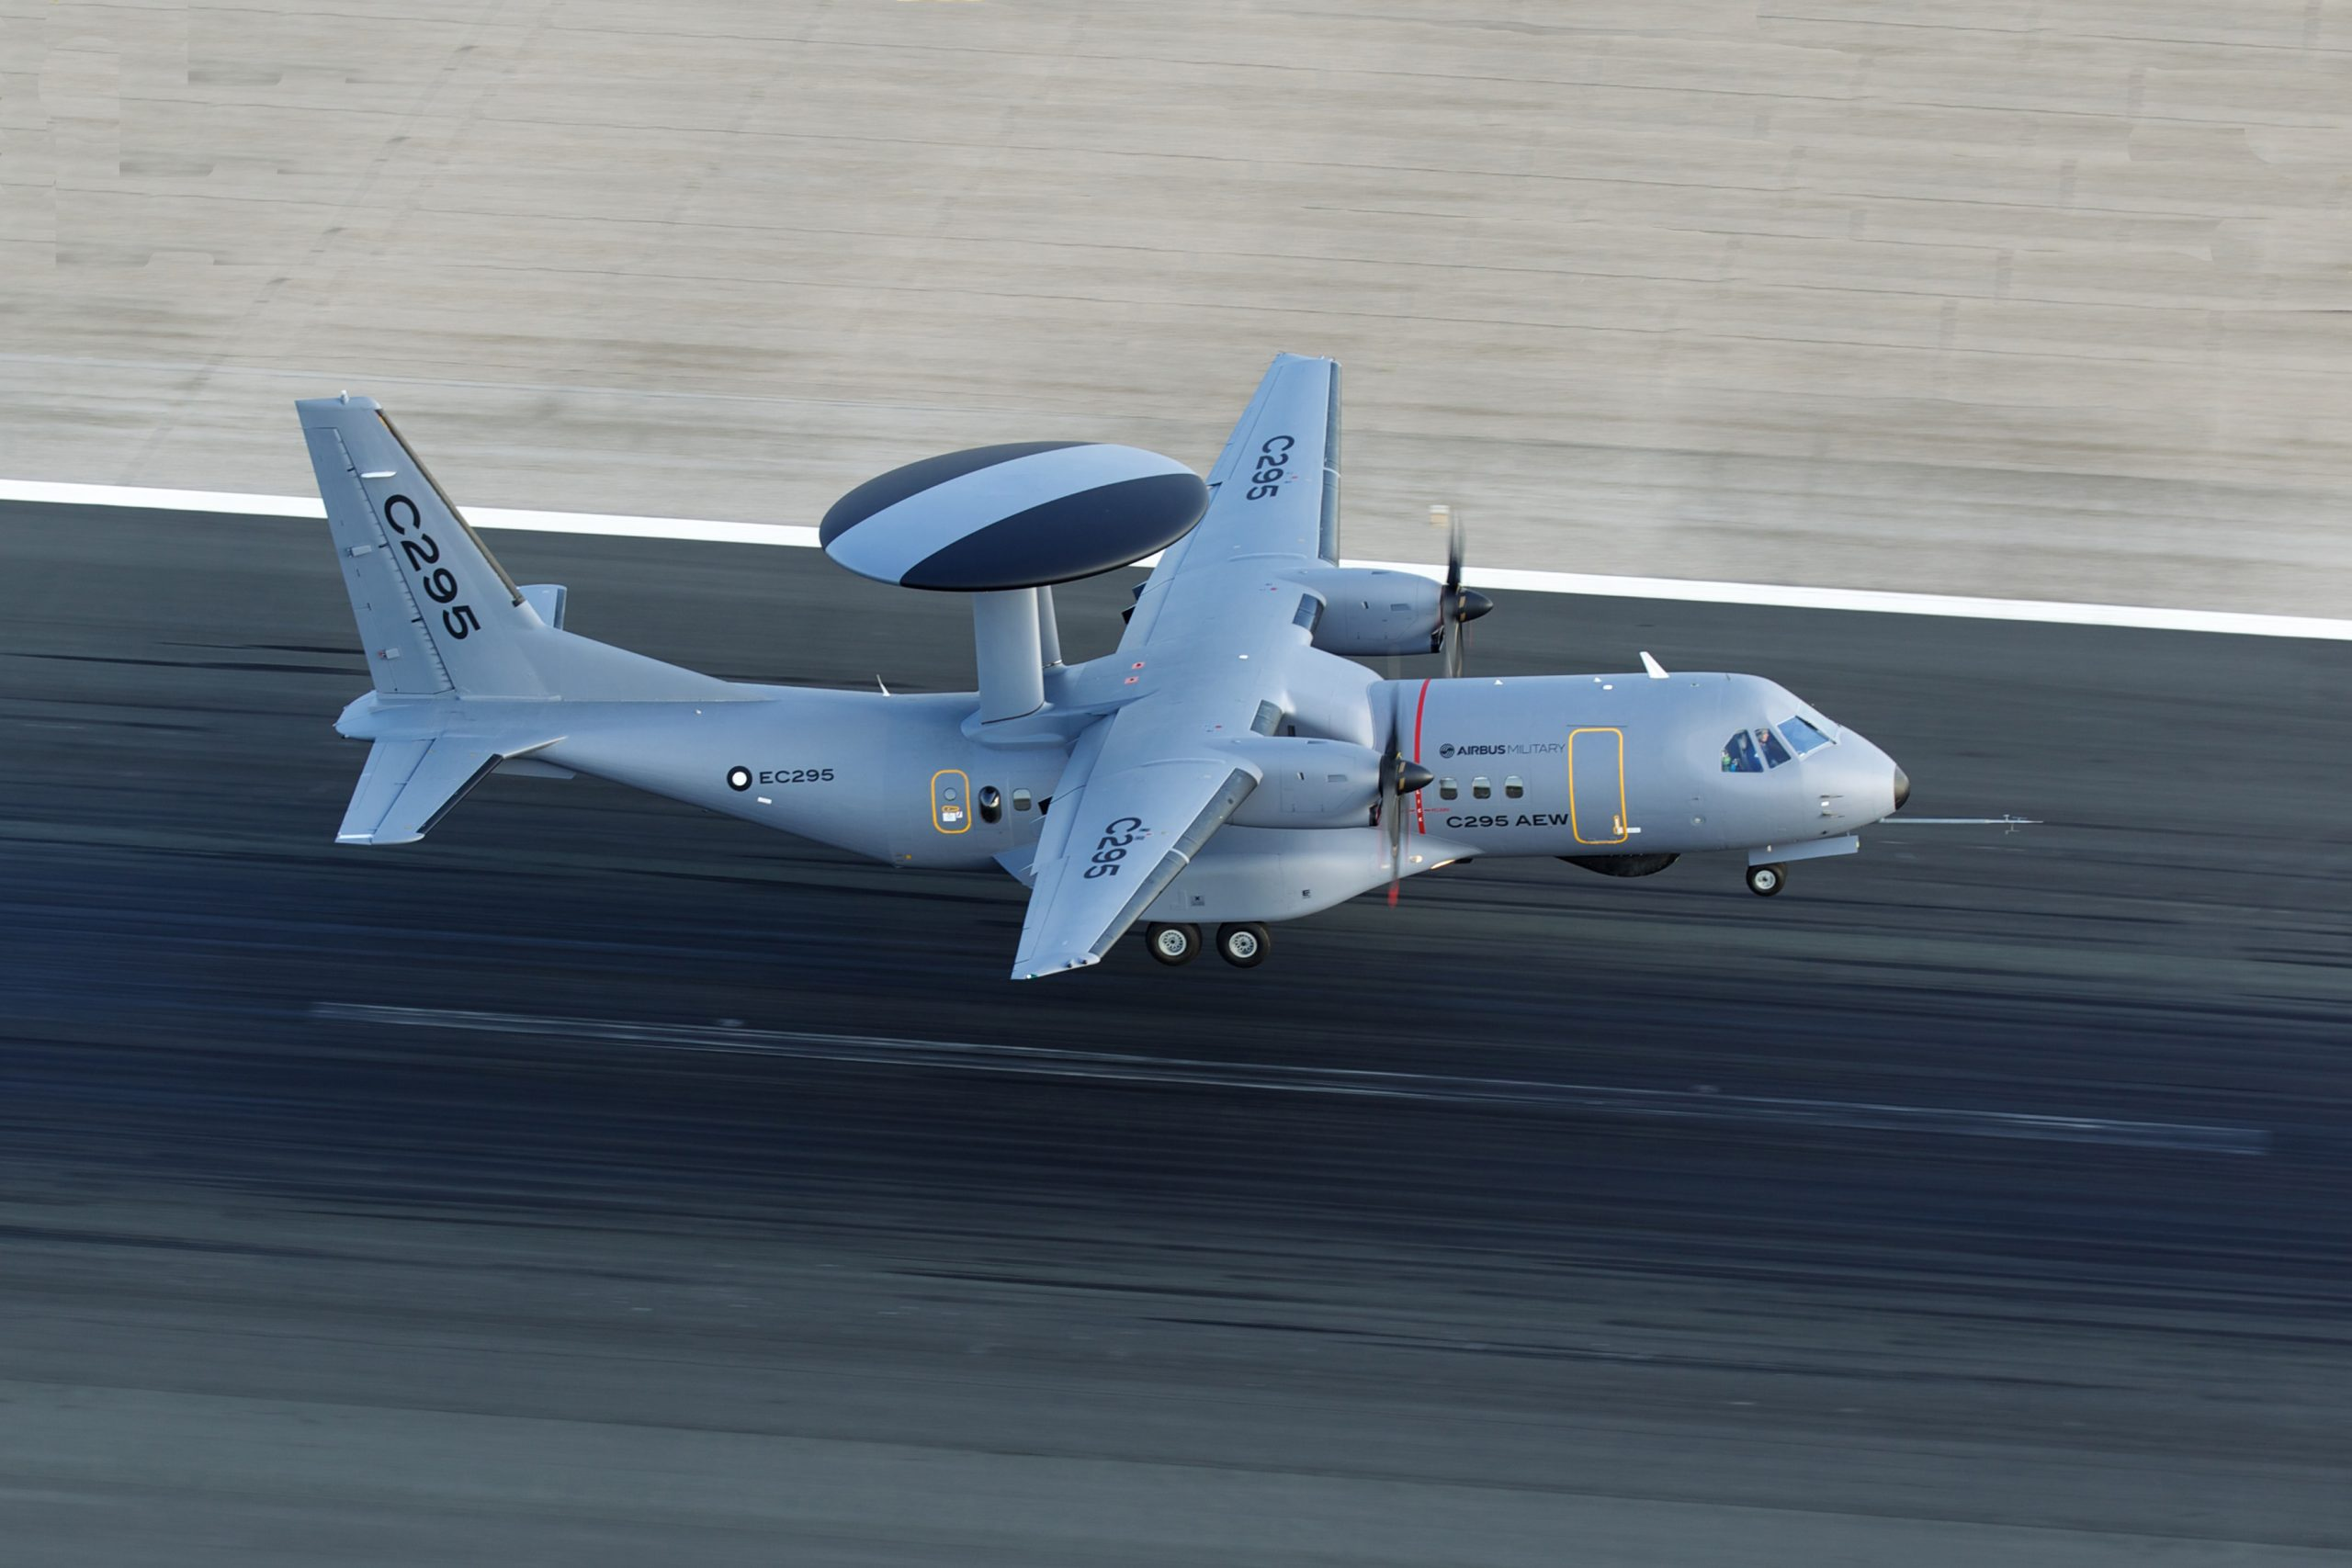 A prototype of the CN-295 AEW&C, a joint-program between Airbus and IAI. Photo credit: Airbus